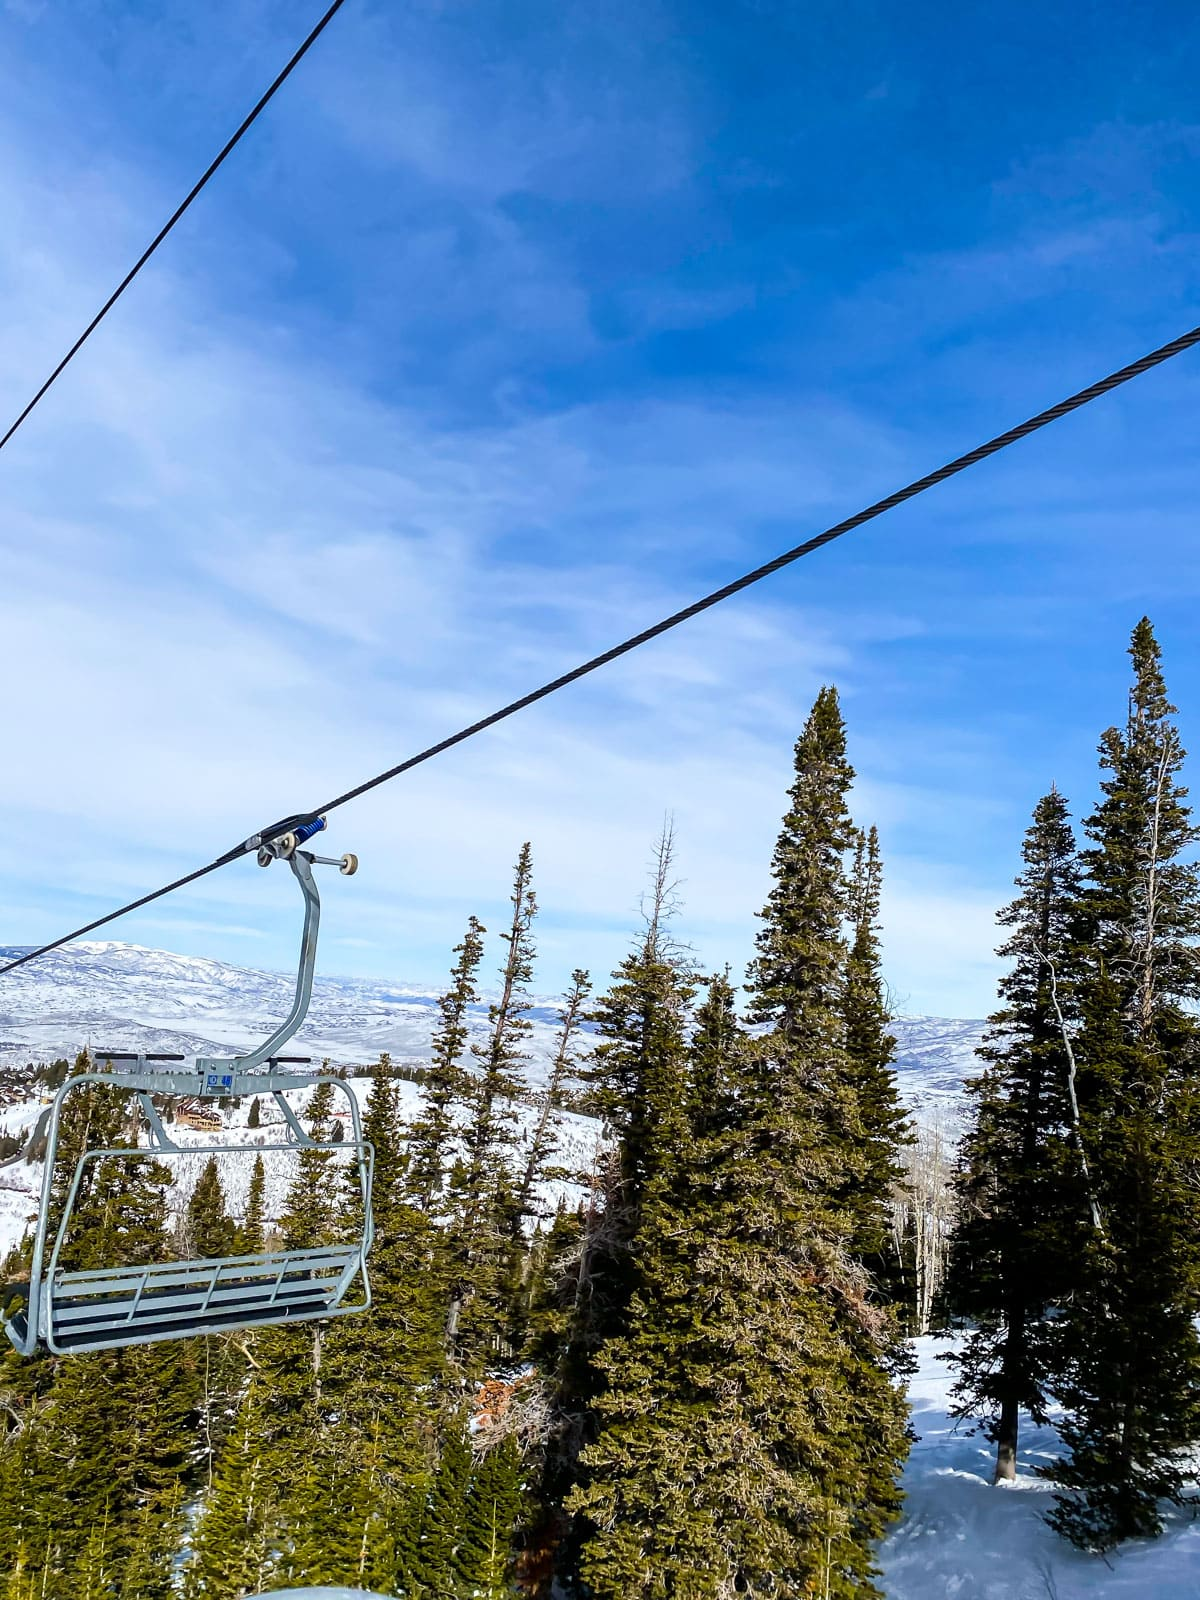 View from a ski lift at Deer Valley Resort